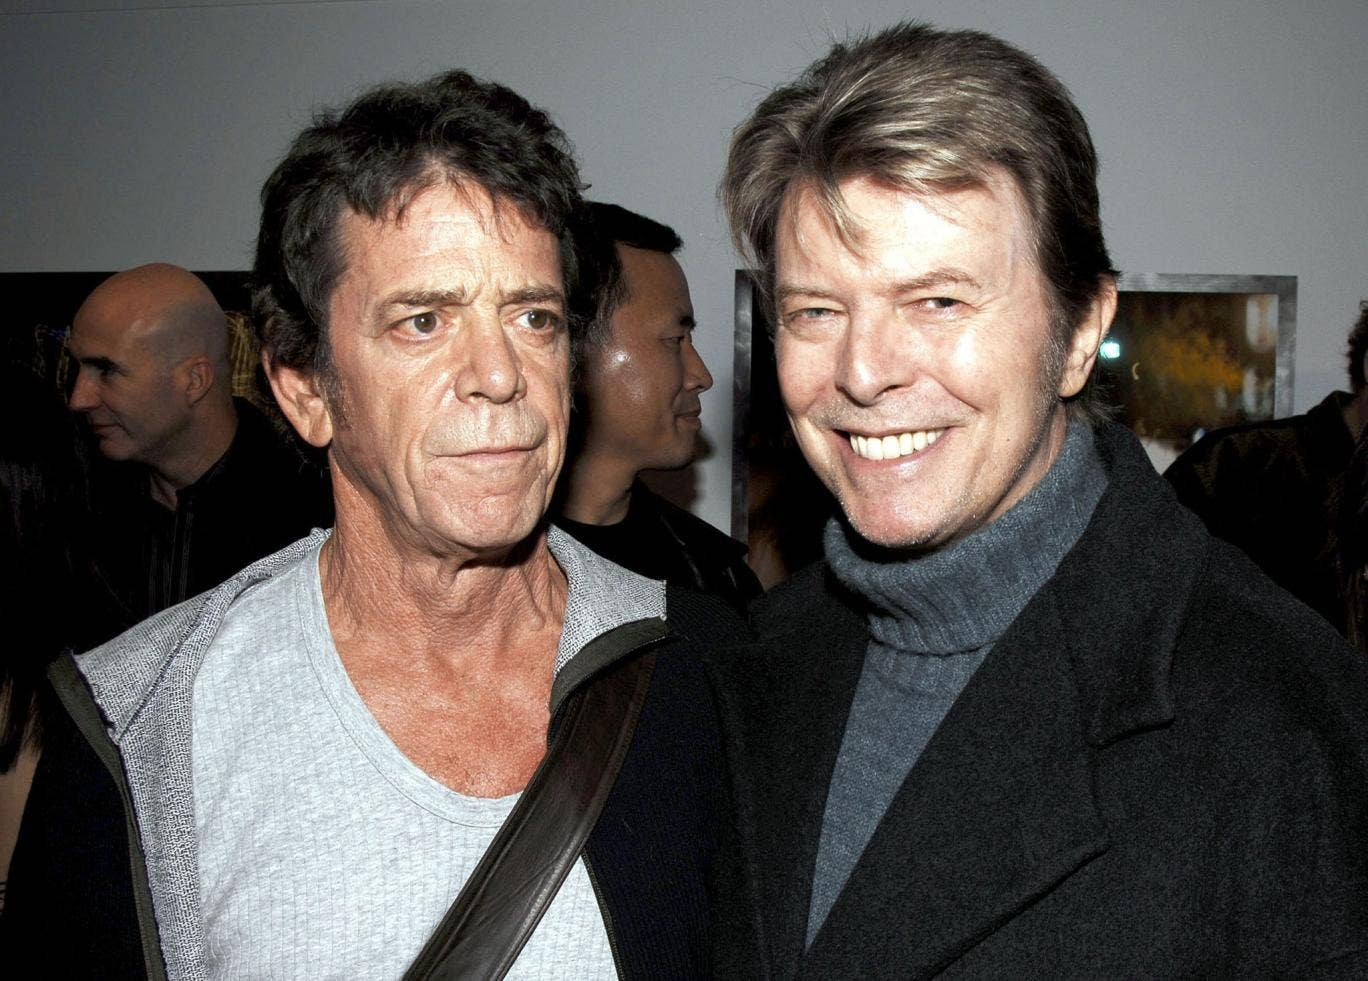 Lou Reed and David Bowie attend the opening of  Reed's photography exhibition in New York City, 2006.